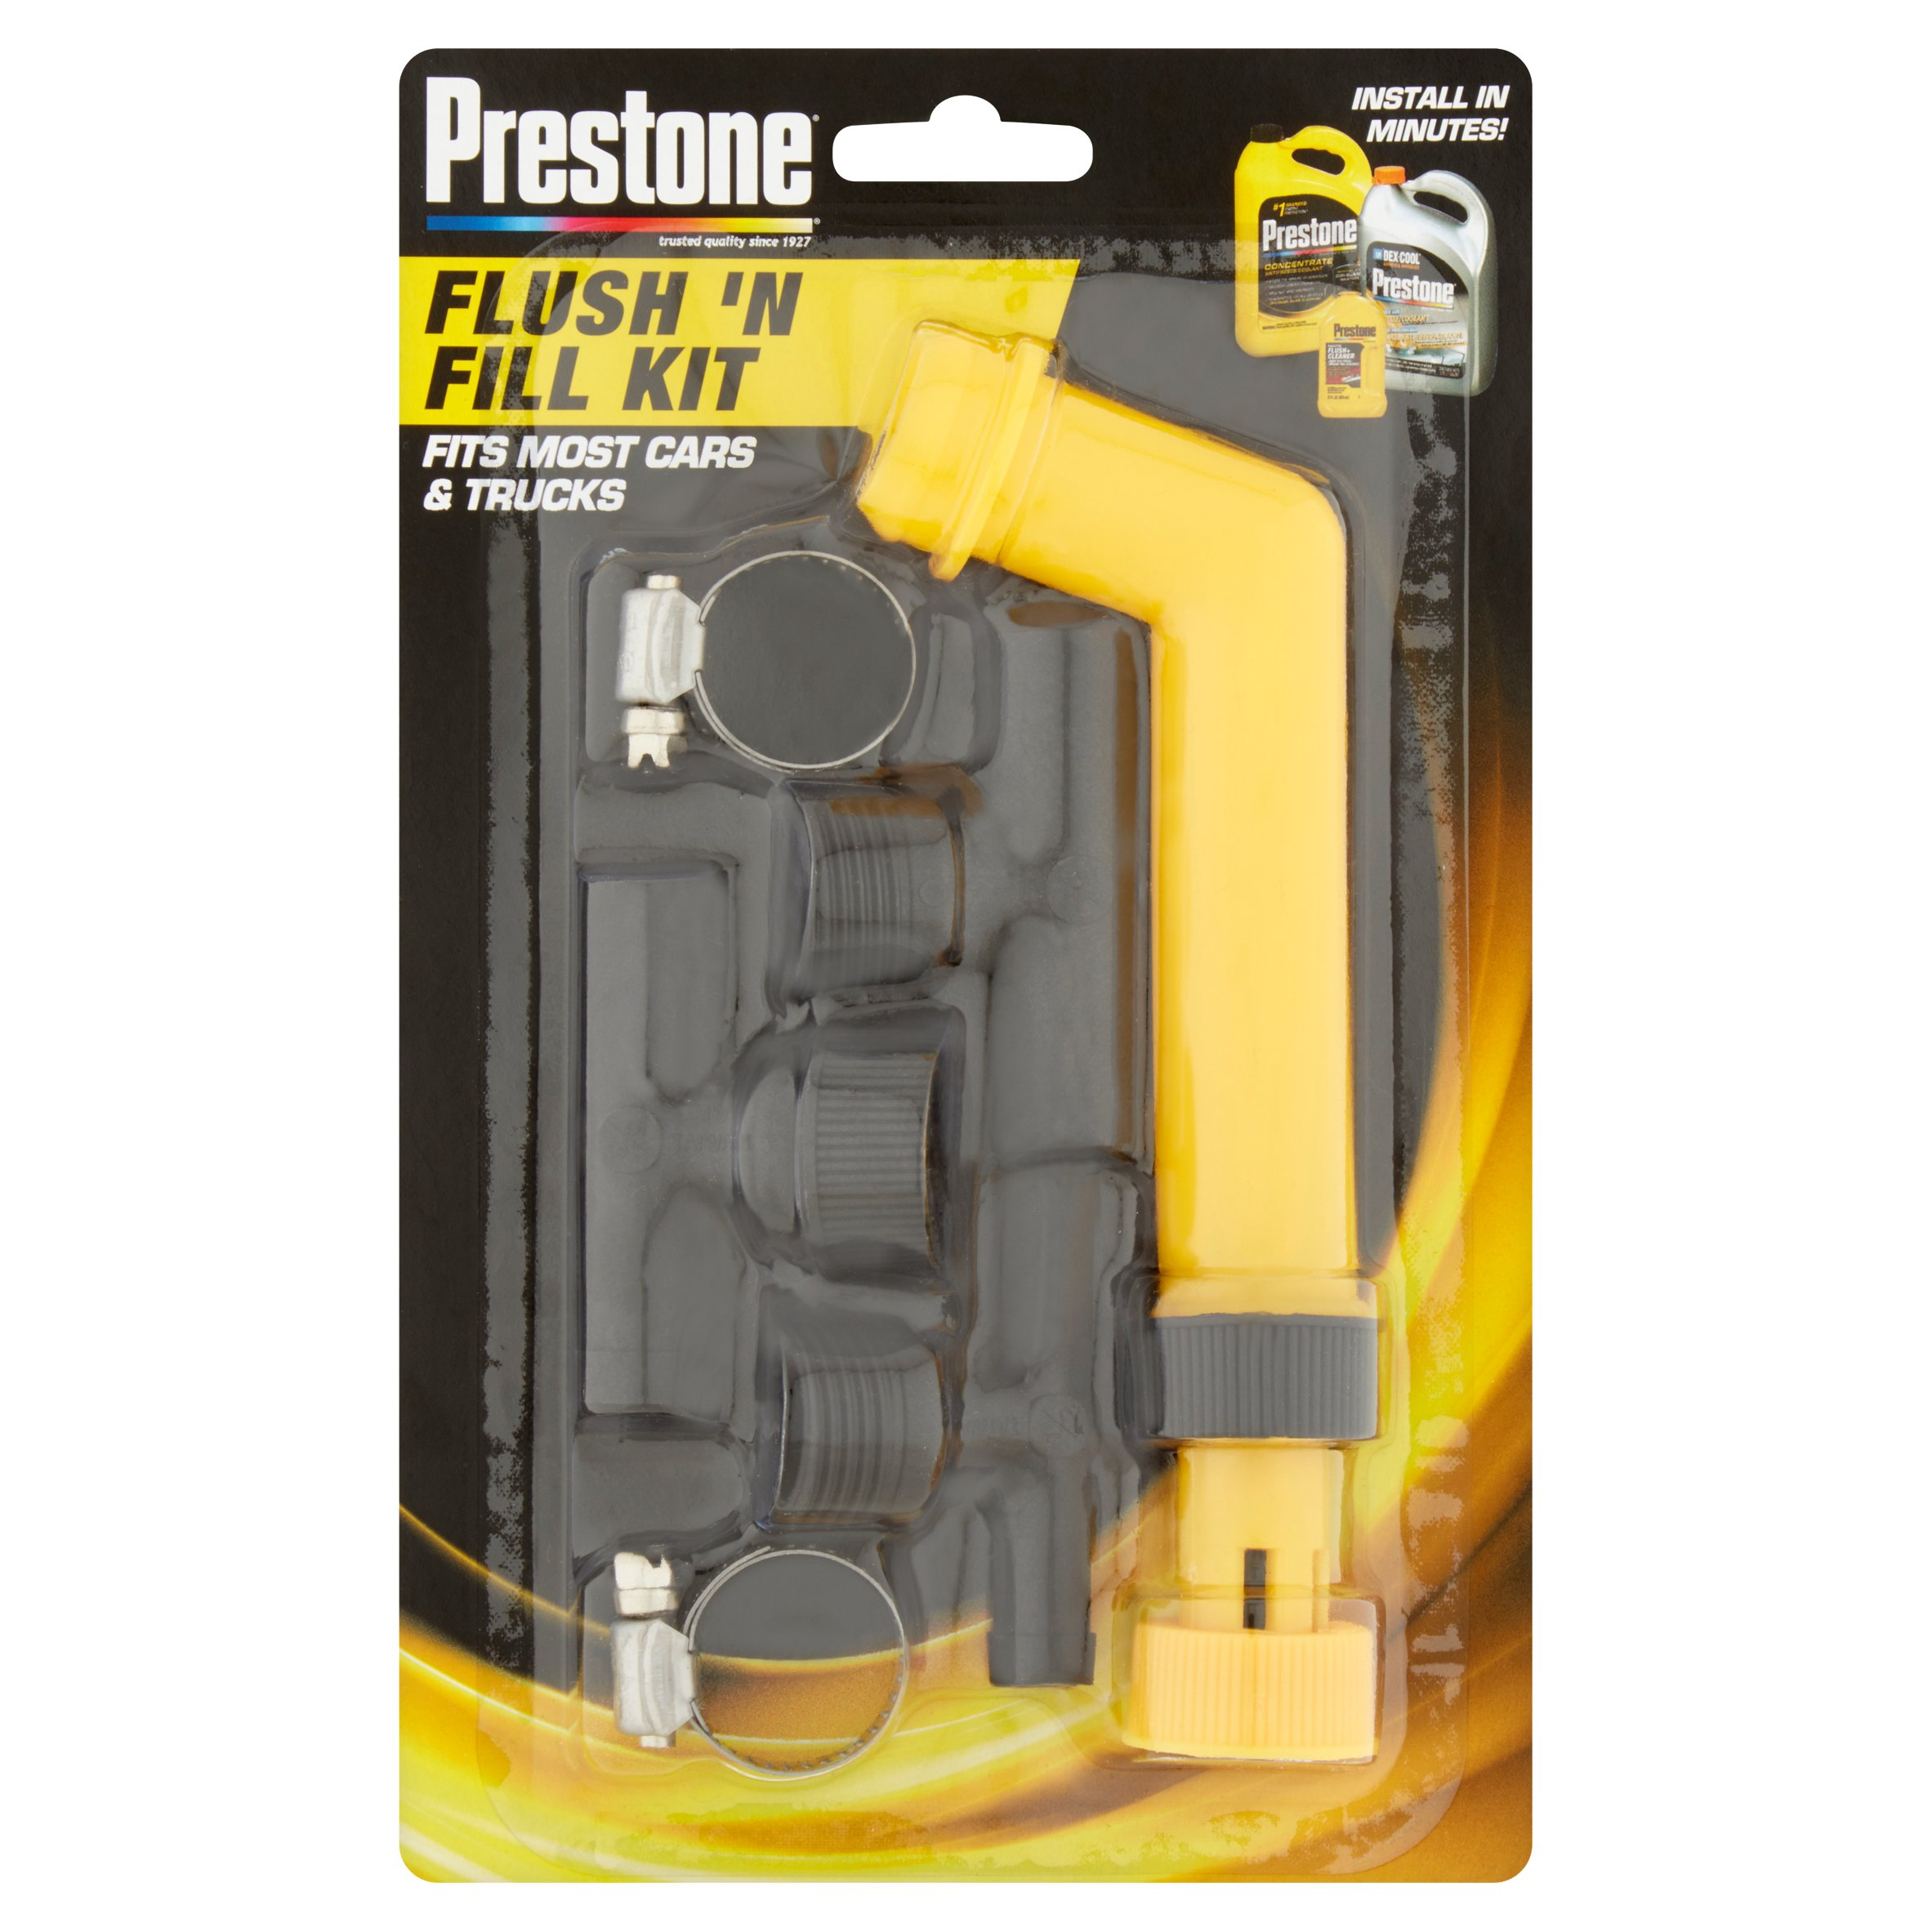 Prestone Flush 'N Fill Kit